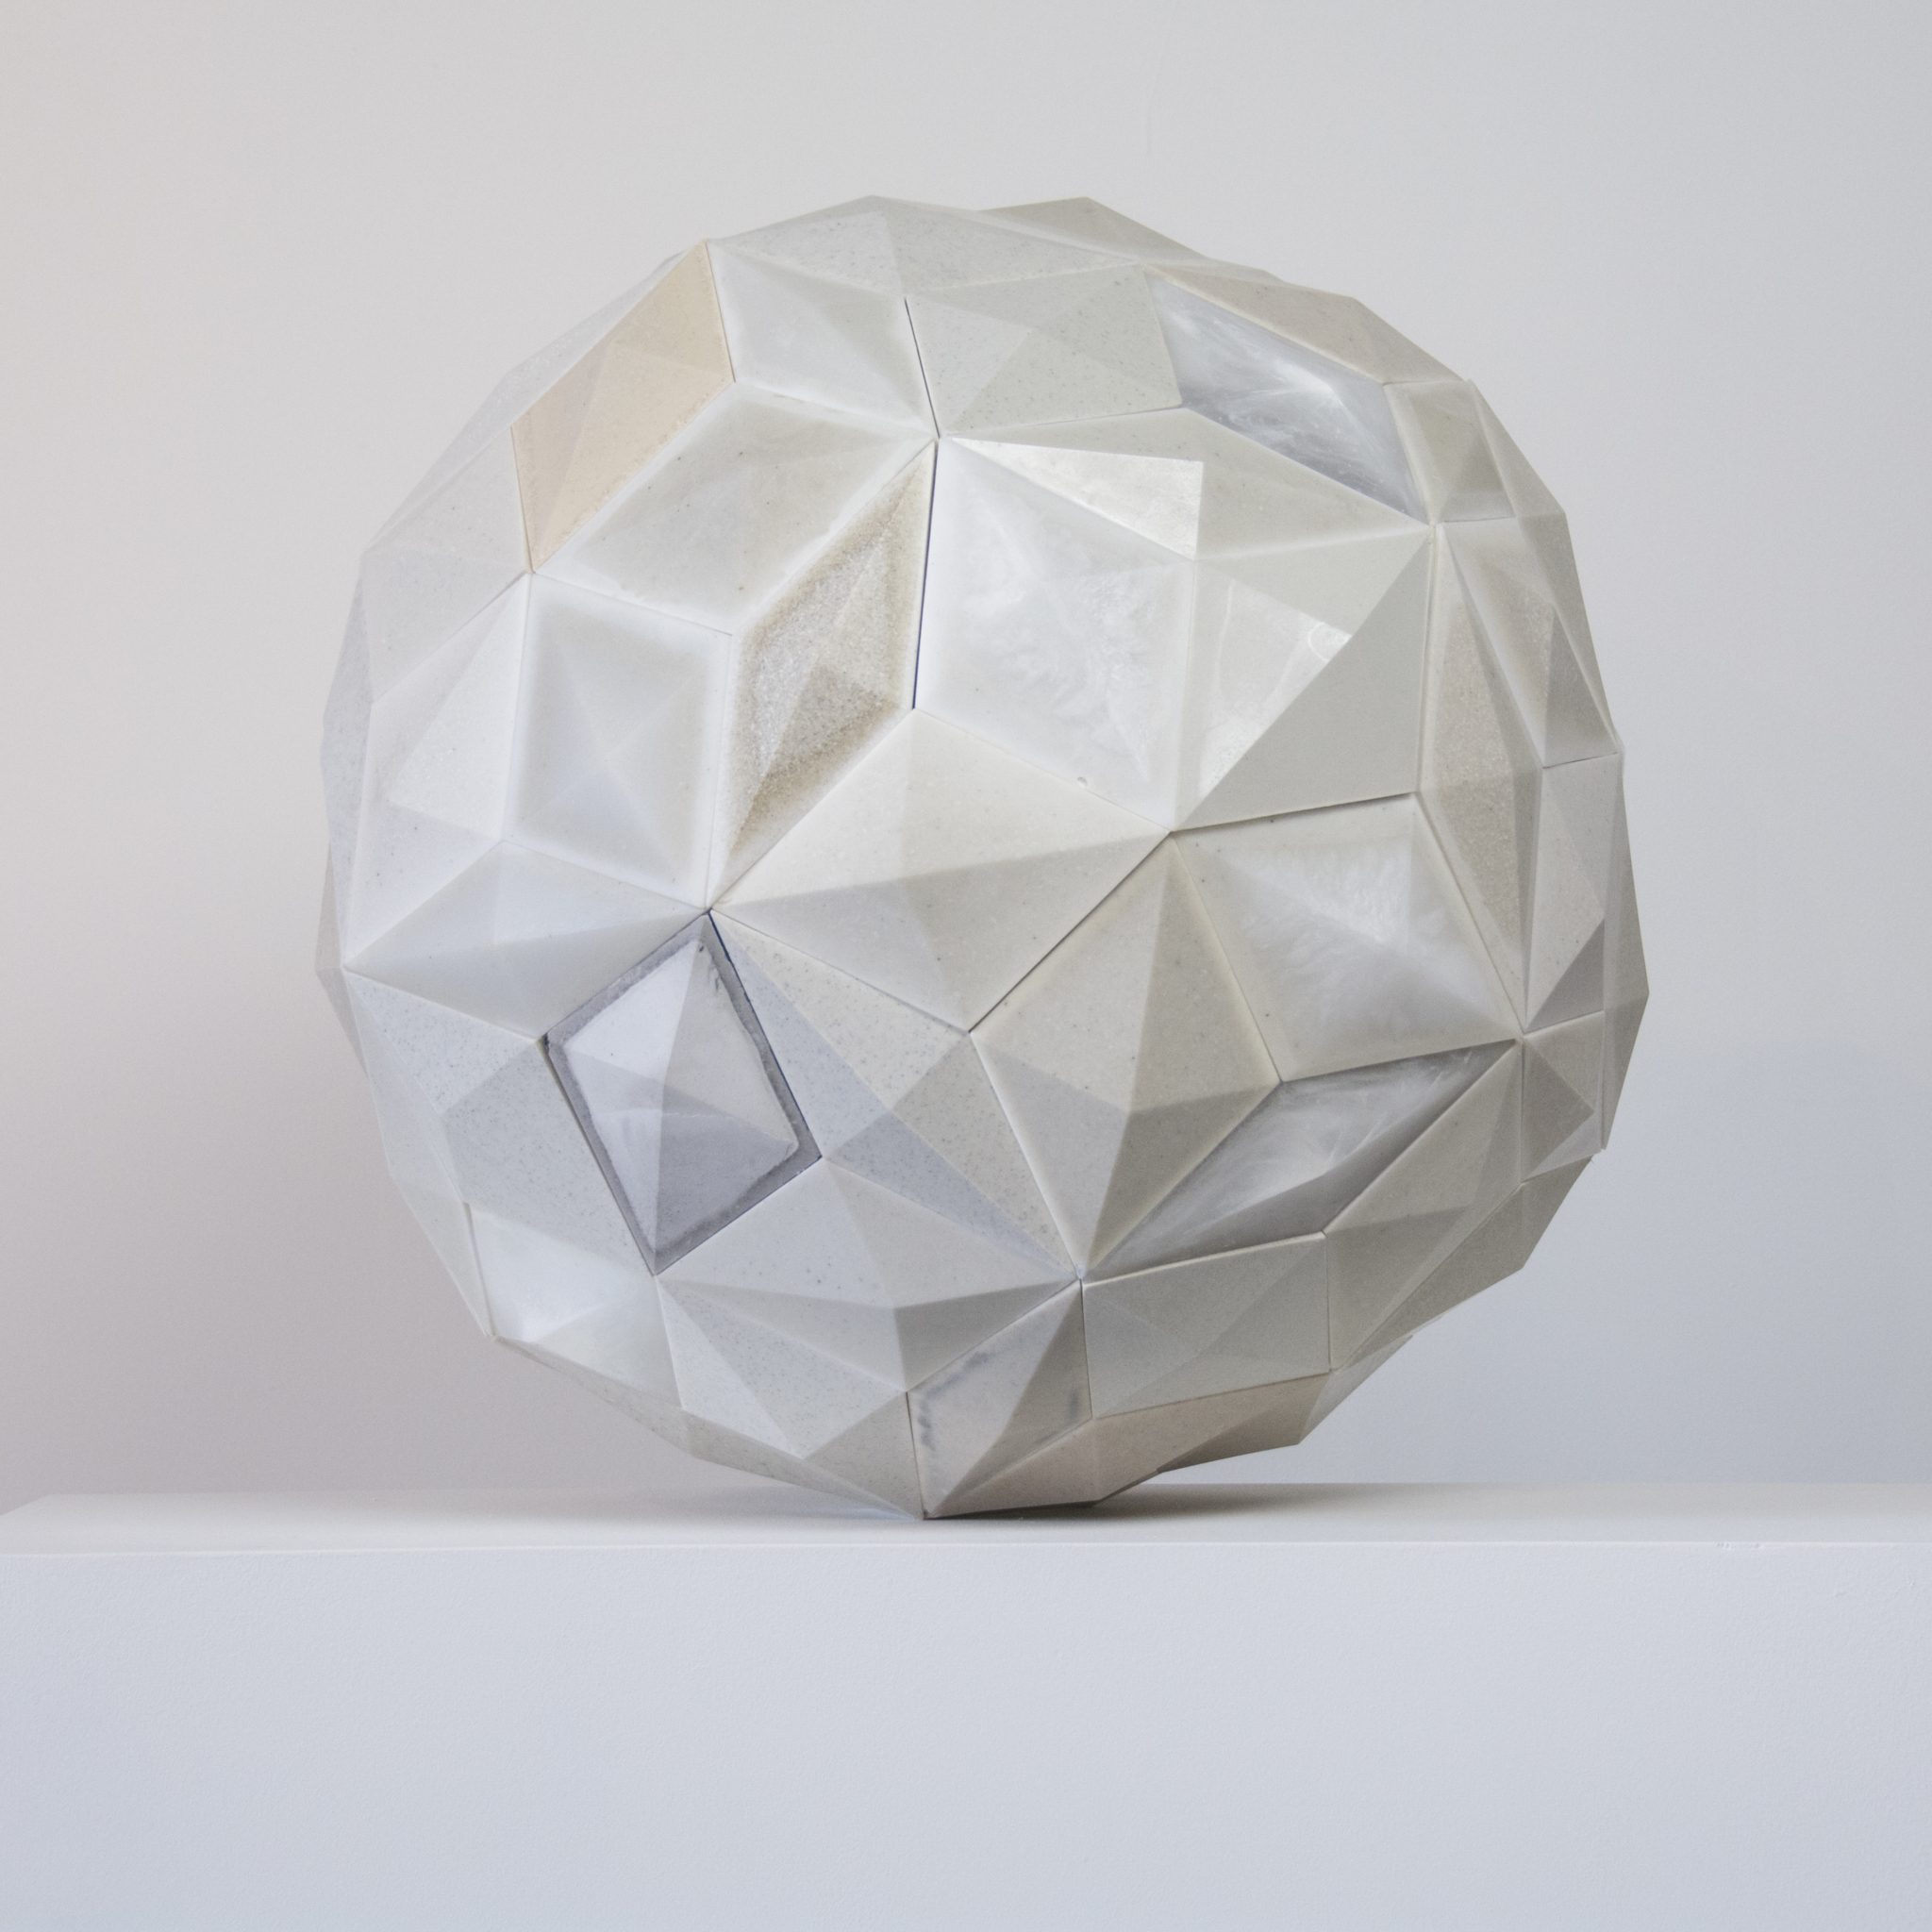 Rhombic Enneacontahedron